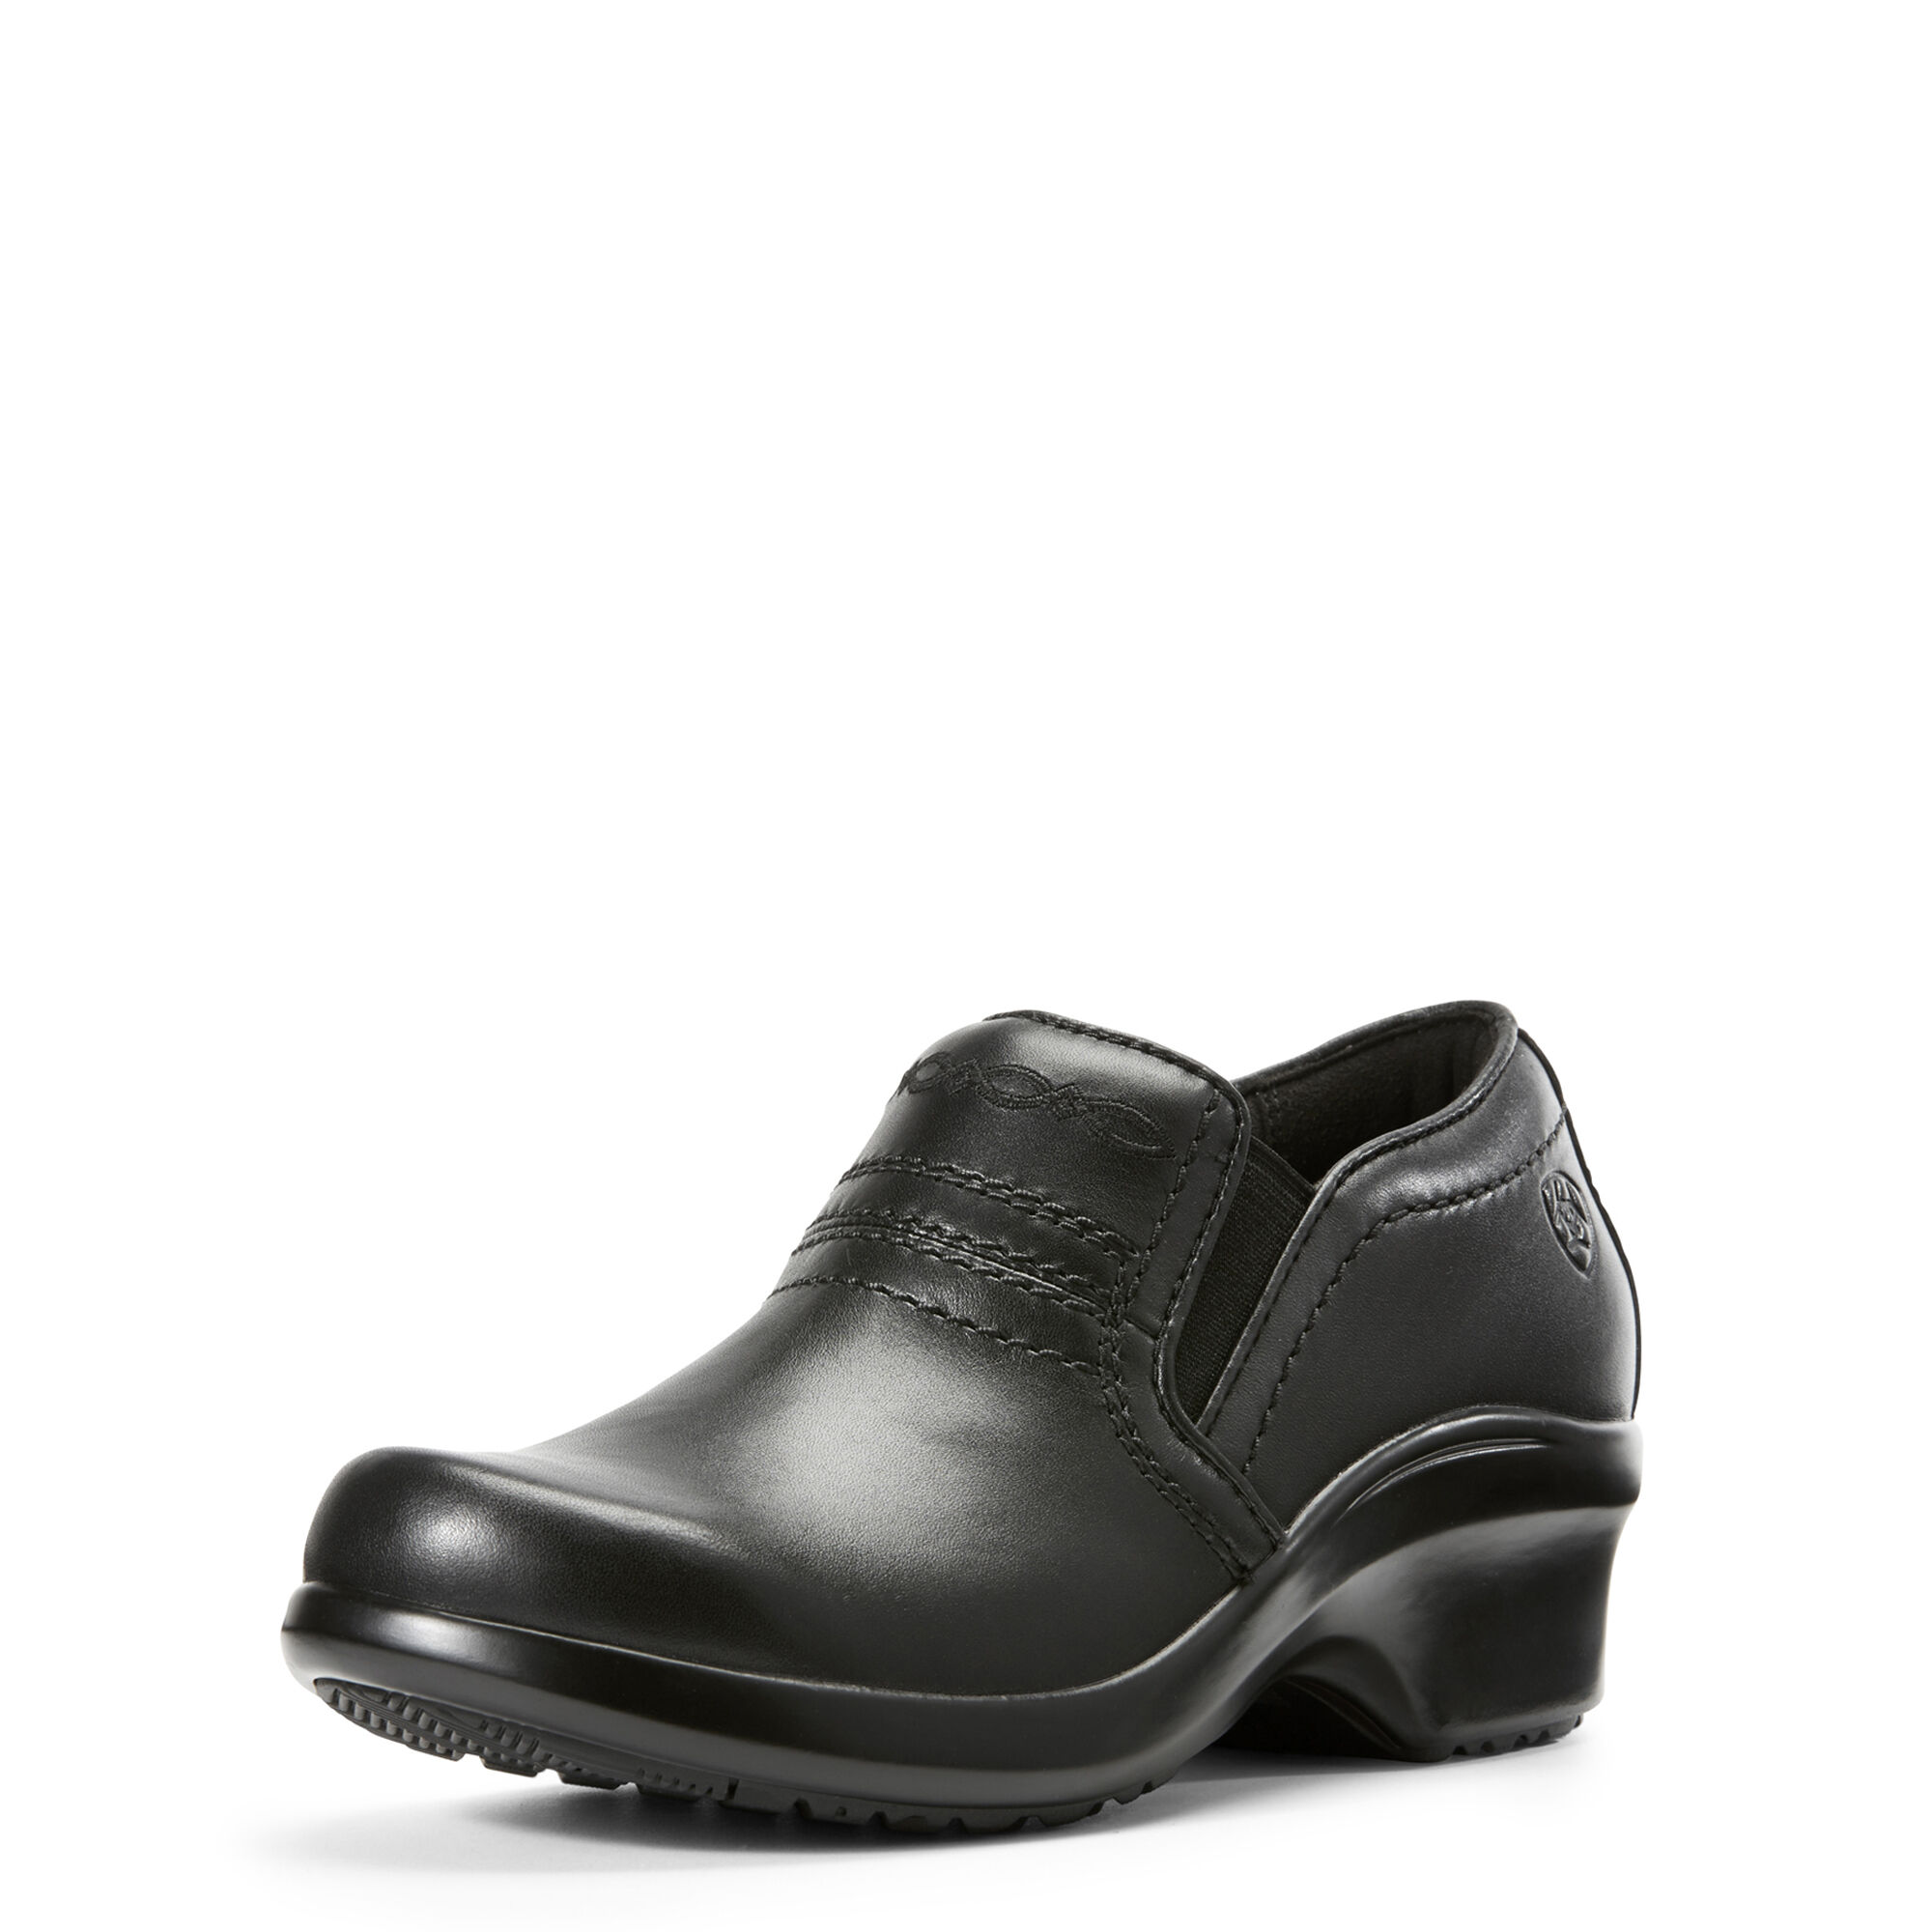 Womens Slip Proof Work Shoes